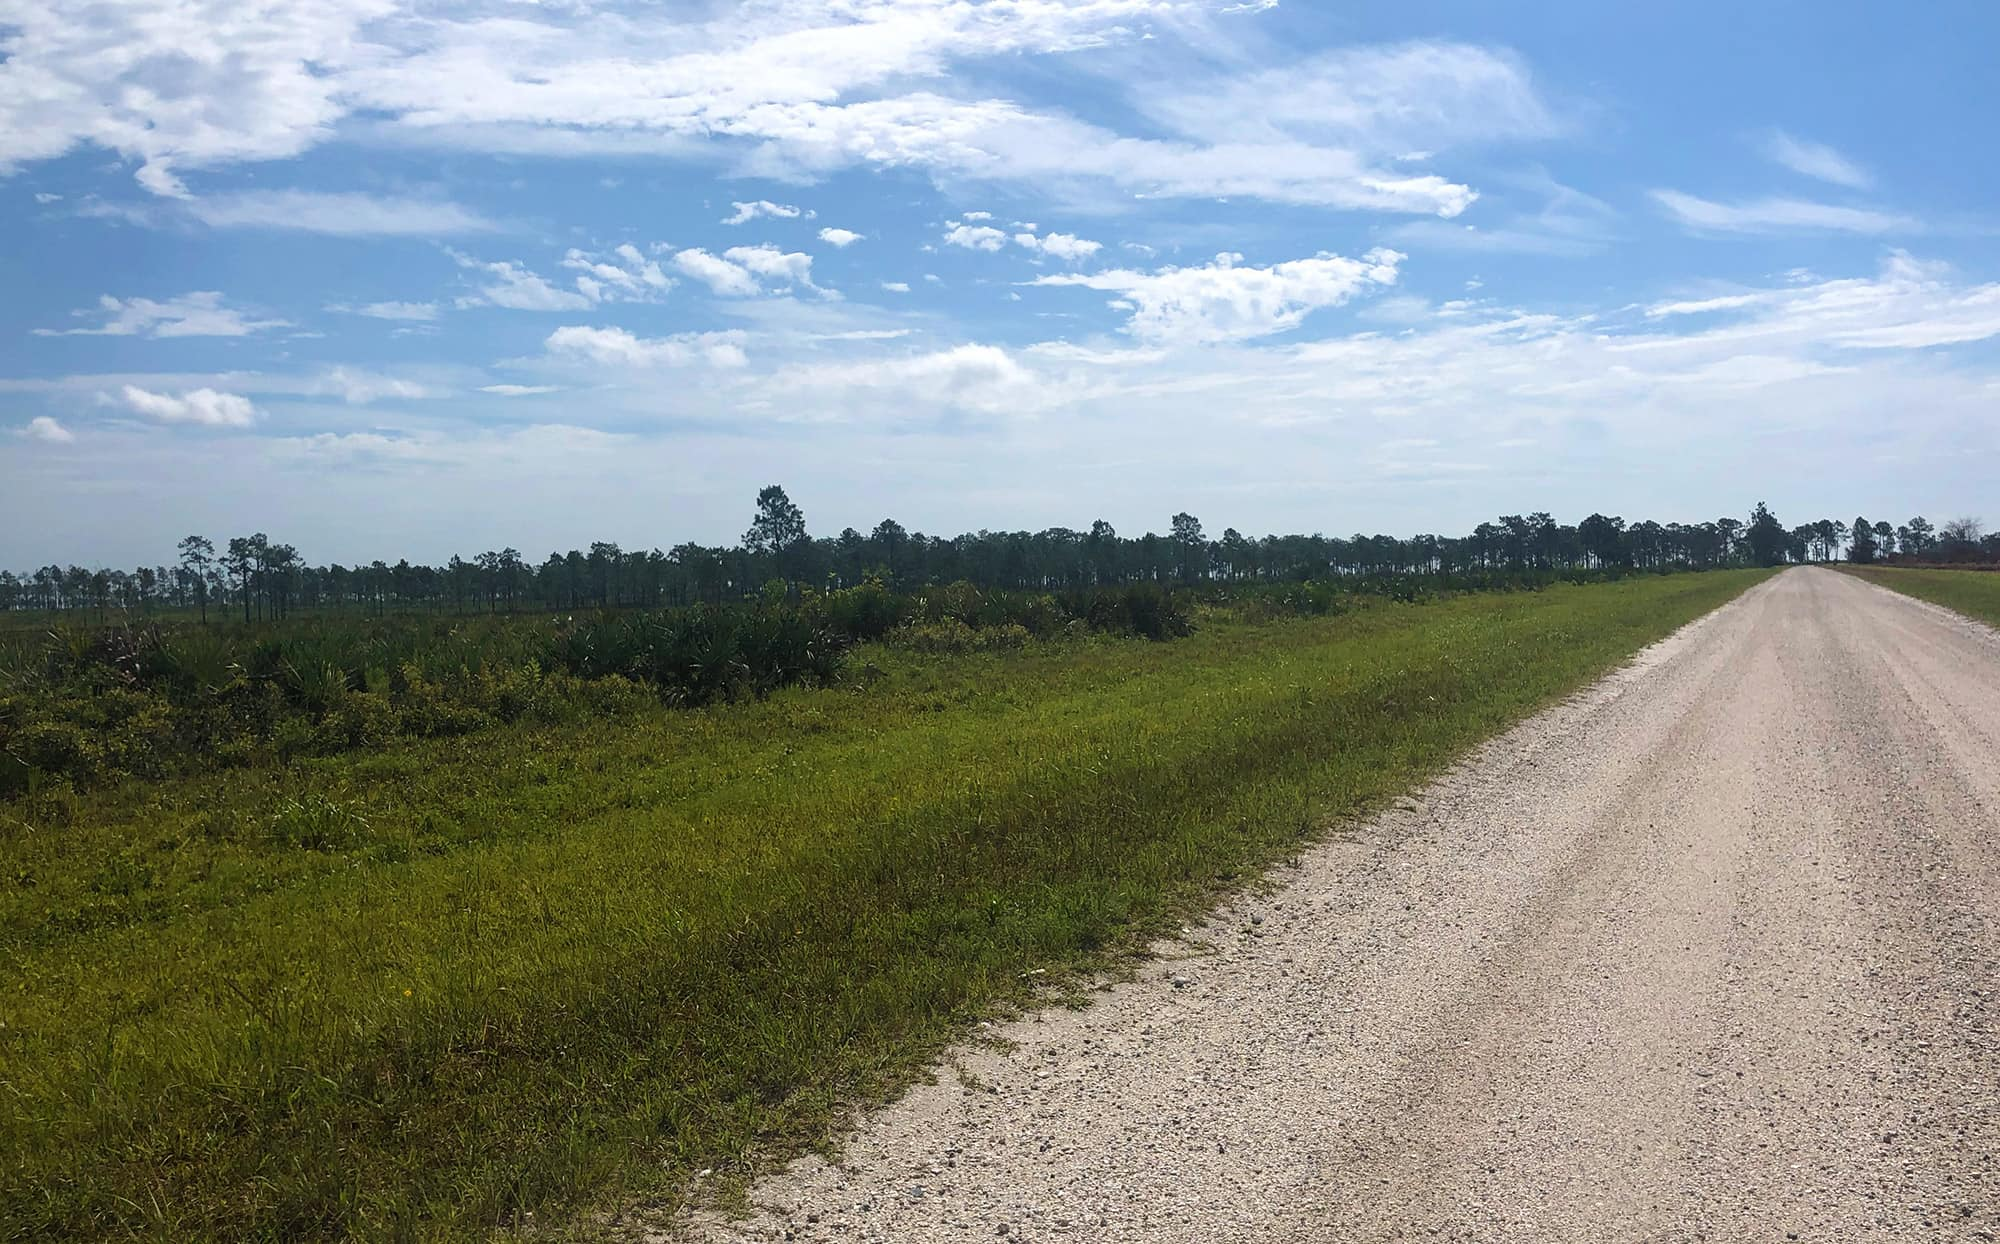 Slightly elevated gravel road extending into tree lined area ahead at Avon Park Air Force Range near Frostproof, FL